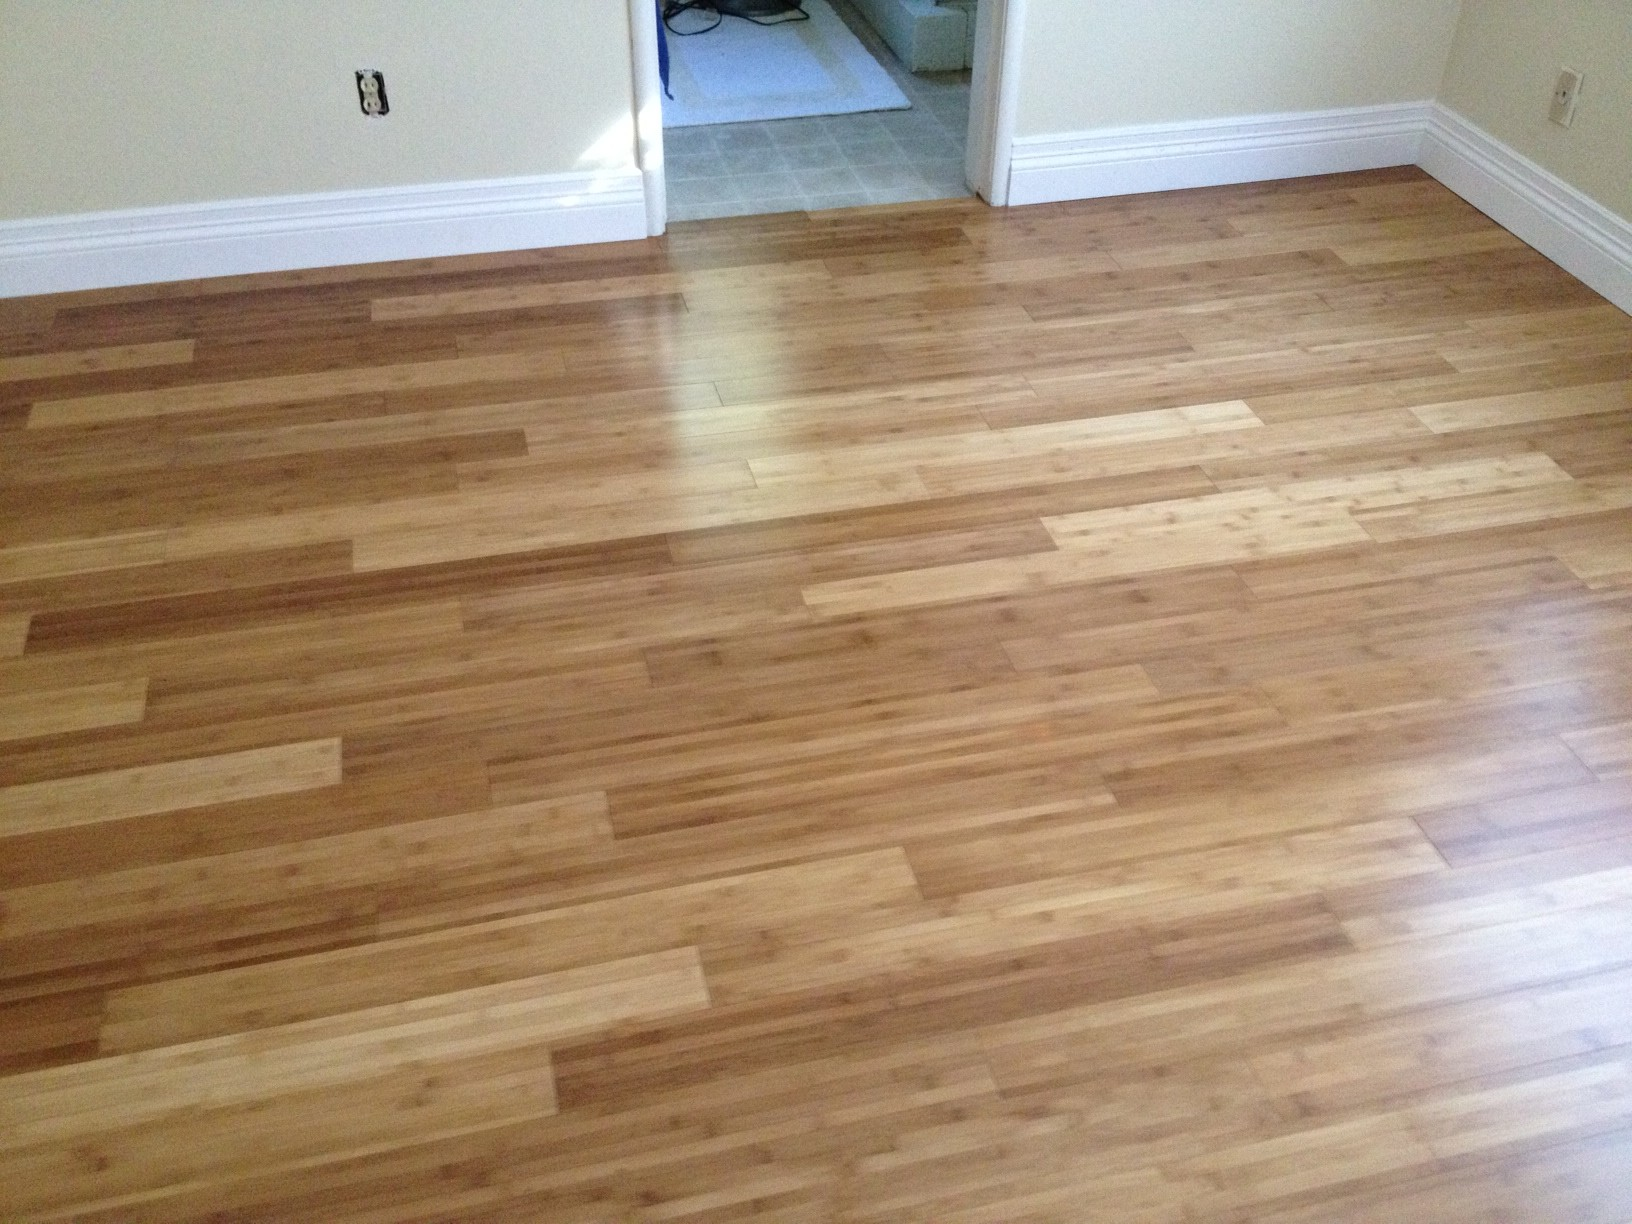 Bamboo Flooring Suy Reviews Carpet Vidalondon